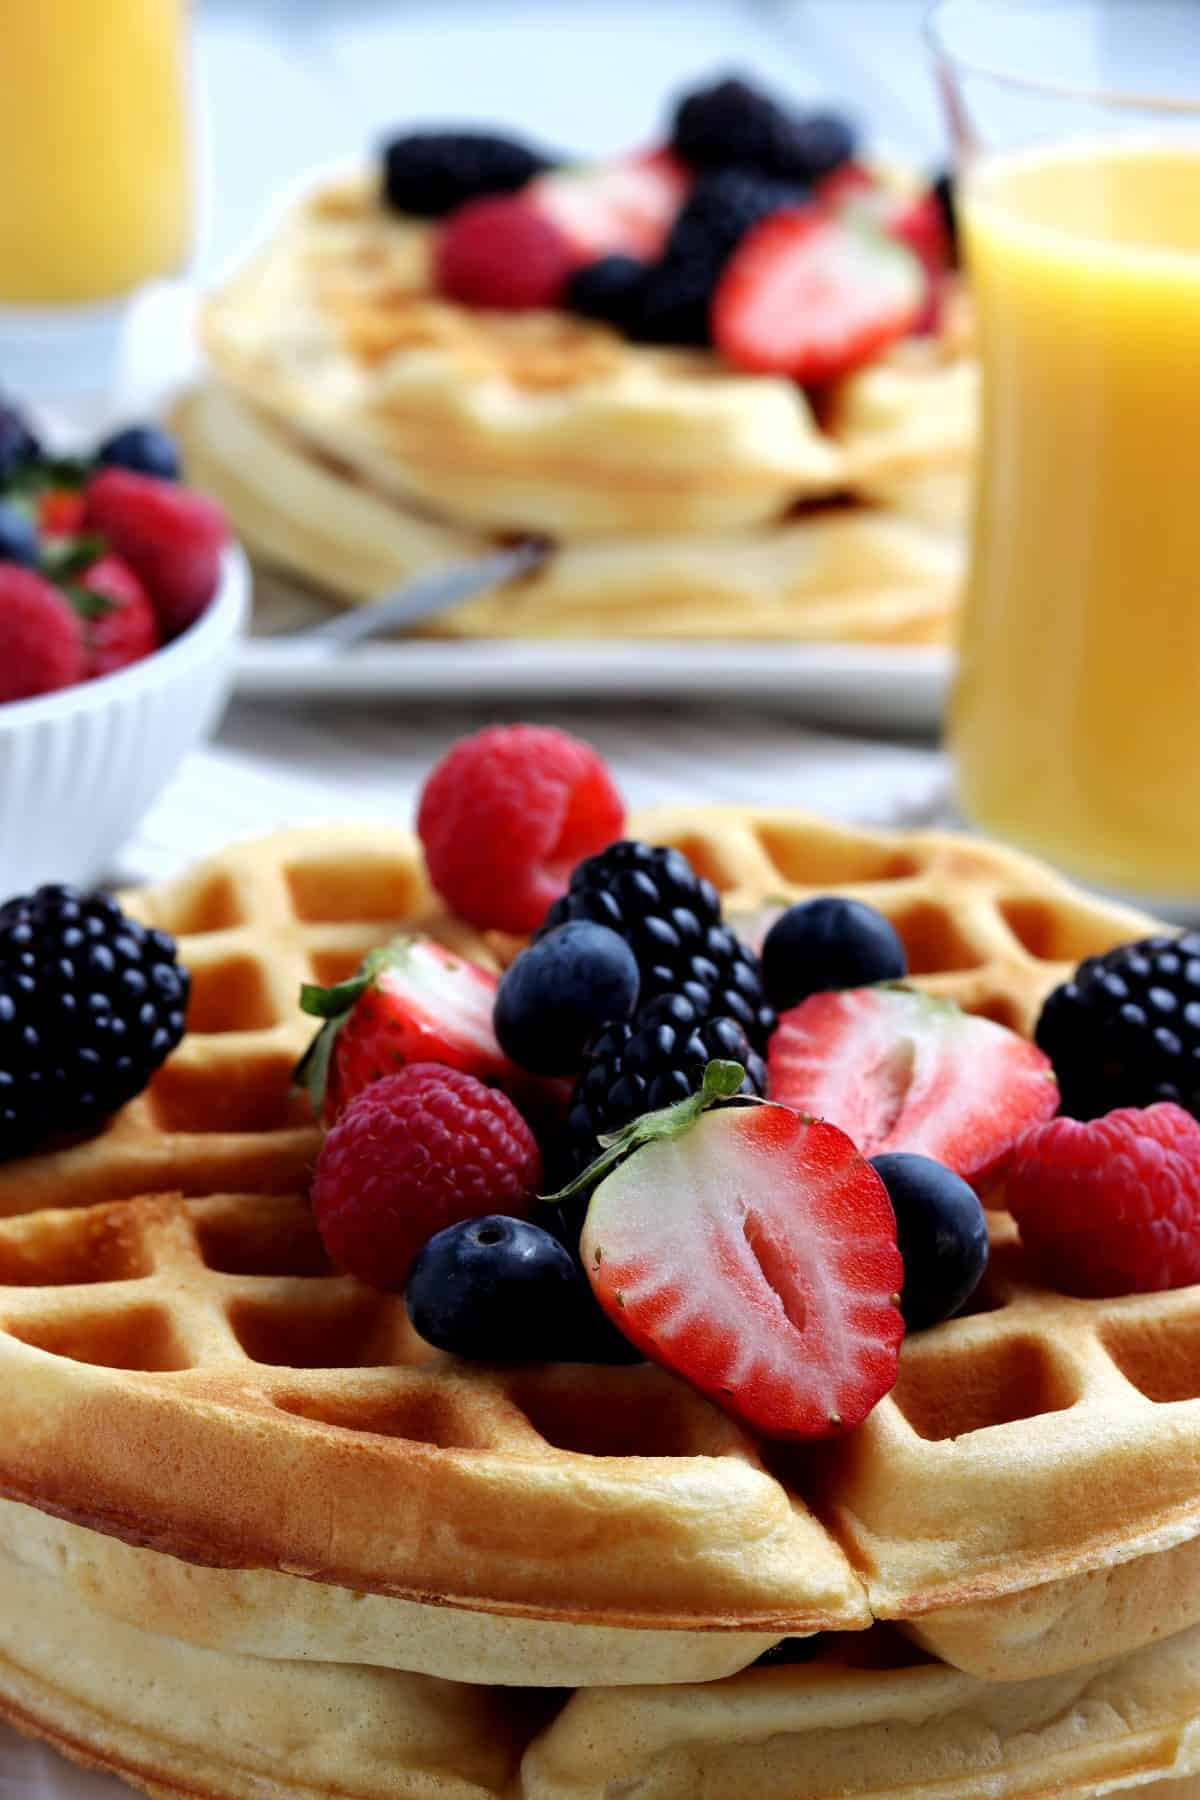 Close up of breakfast with berries and orange juice behind.